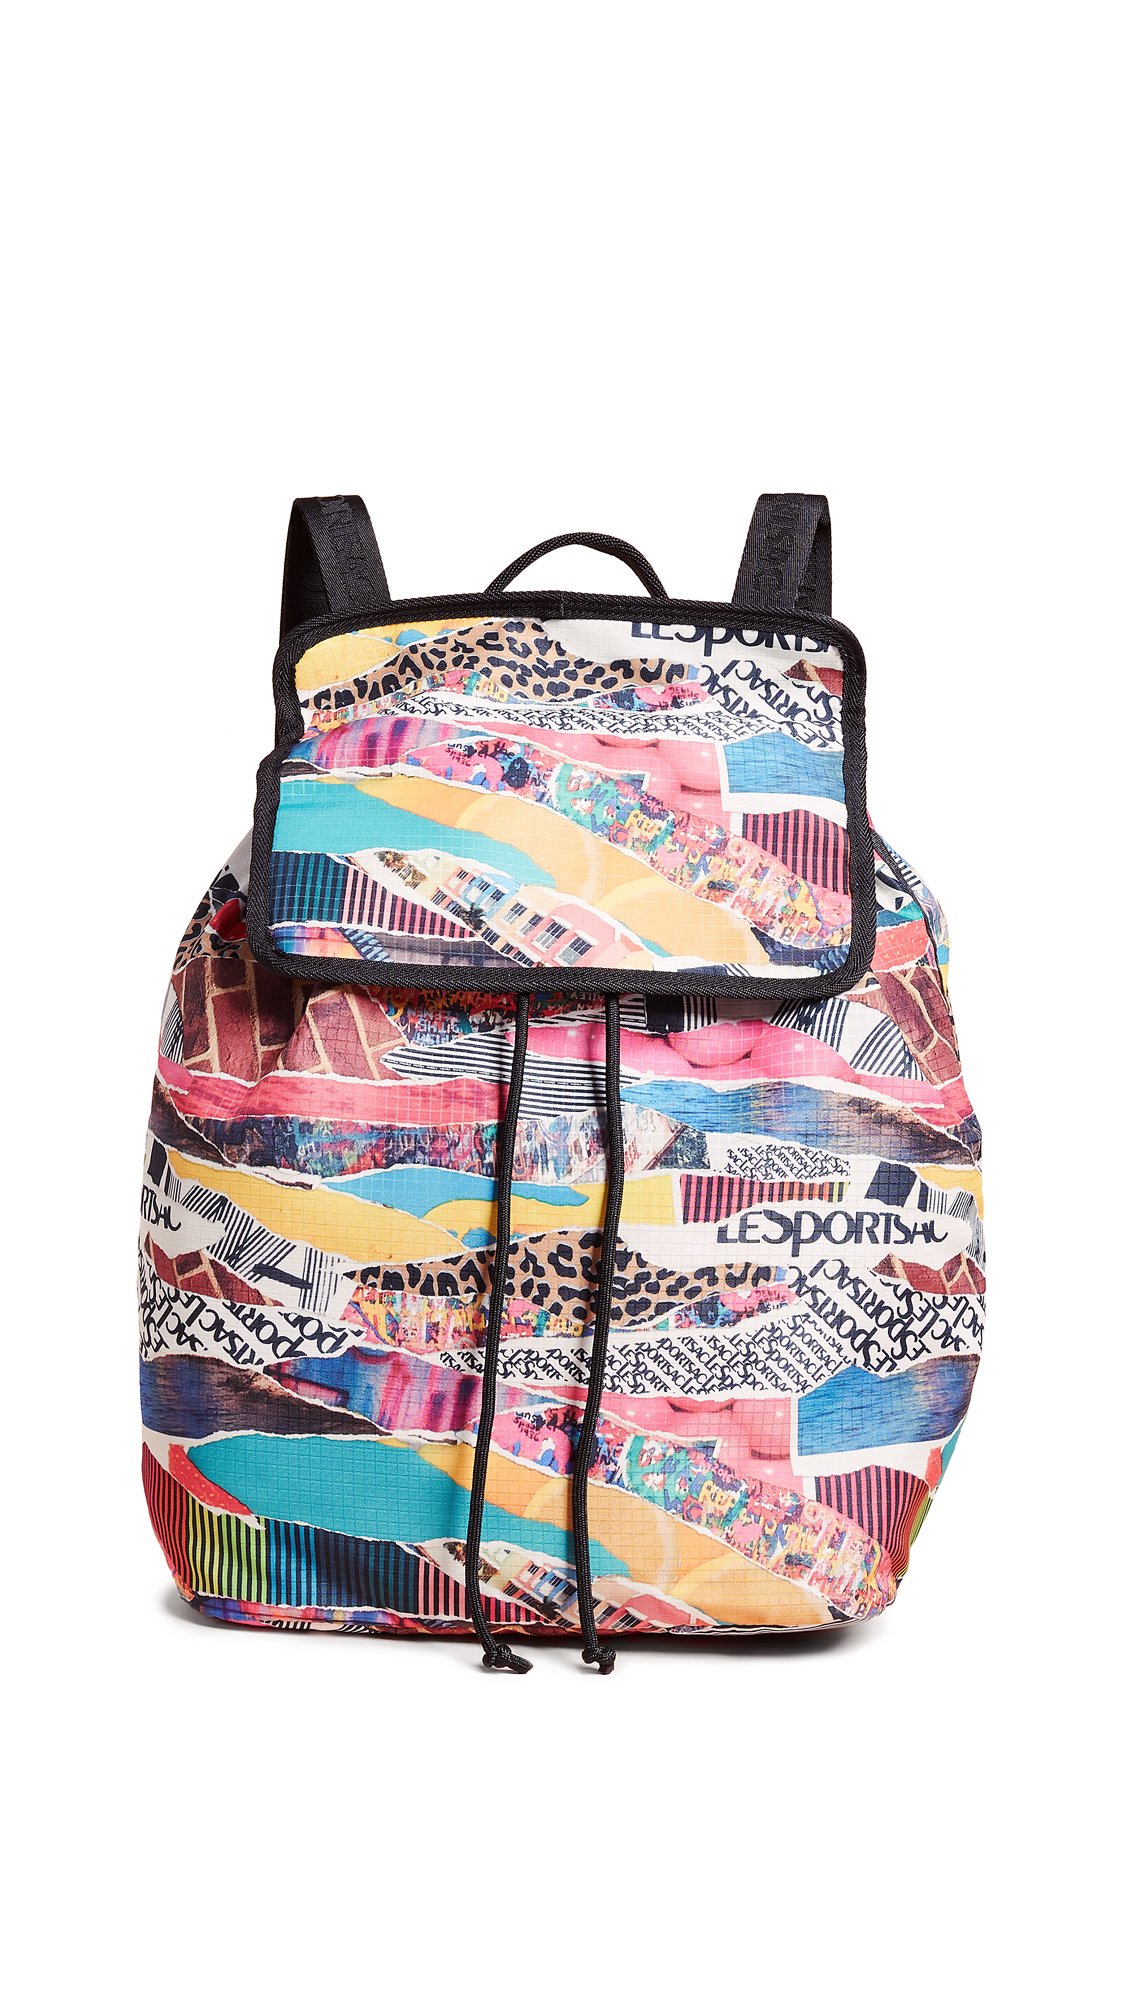 LESPORTSAC Gabrielle Backpack in Y2K Collage